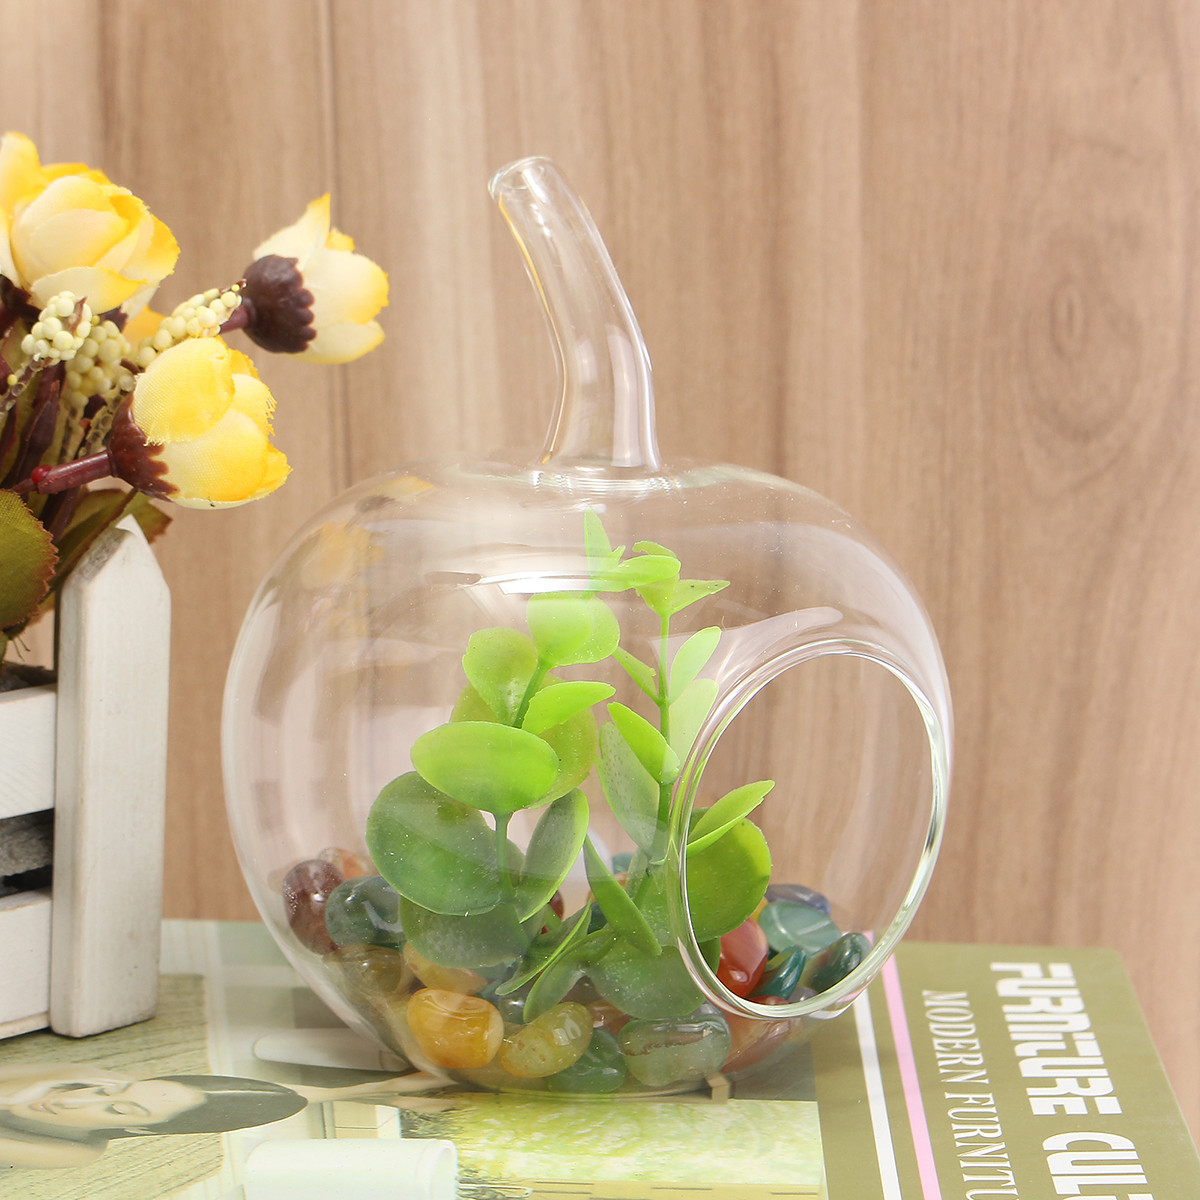 Volkswagen Flower Vase Of Plants Crystal Glass Flower Vase Terrarium Container Micro In 1 X Crystal Glass Flower Vase